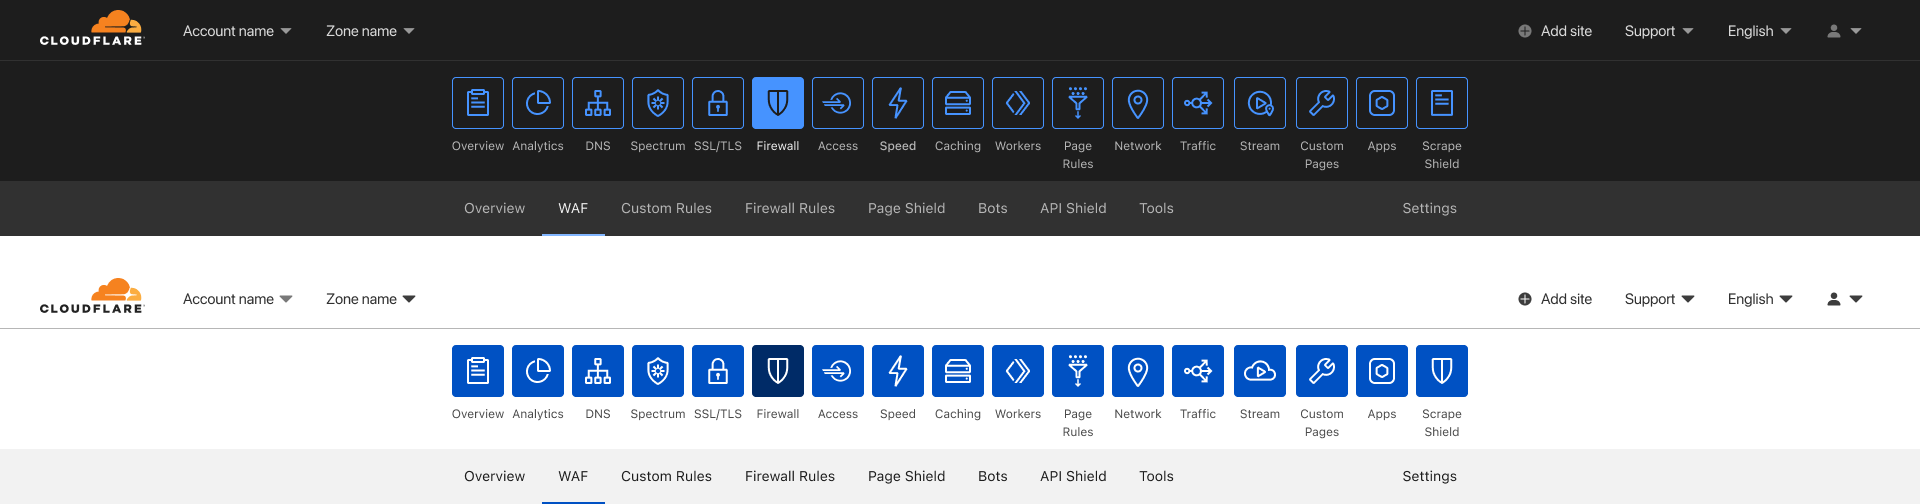 Dark Mode for the Cloudflare Dashboard